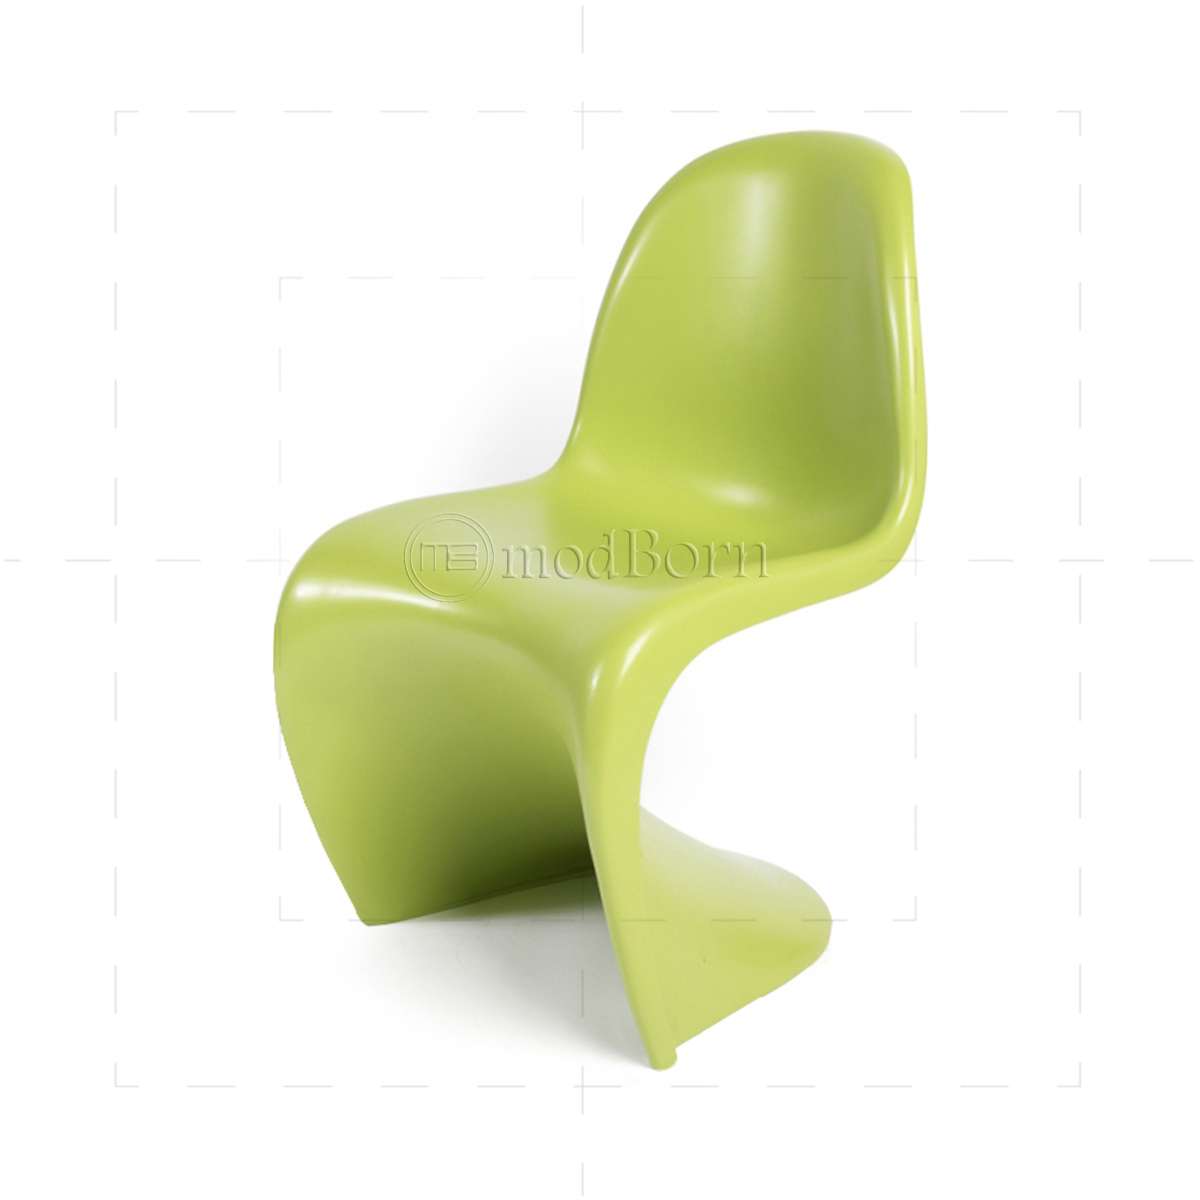 panton chair review neutral posture selector verner orange replica green